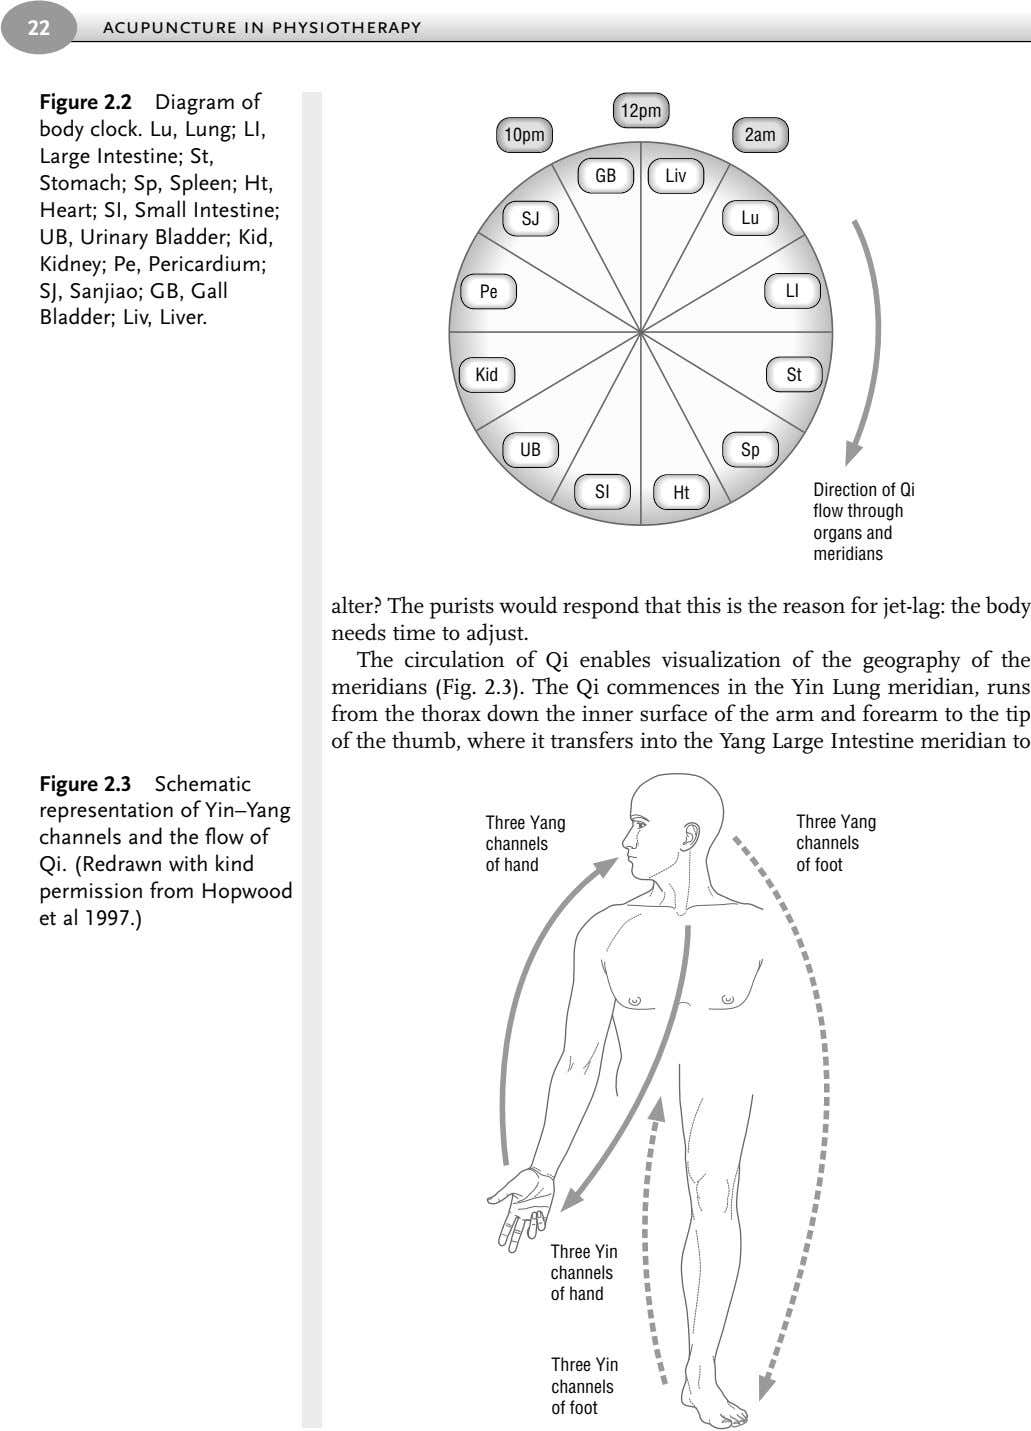 22 acupuncture in physiotherapy Figure 2.2 Diagram of 12pm body clock. Lu, Lung; LI, Large